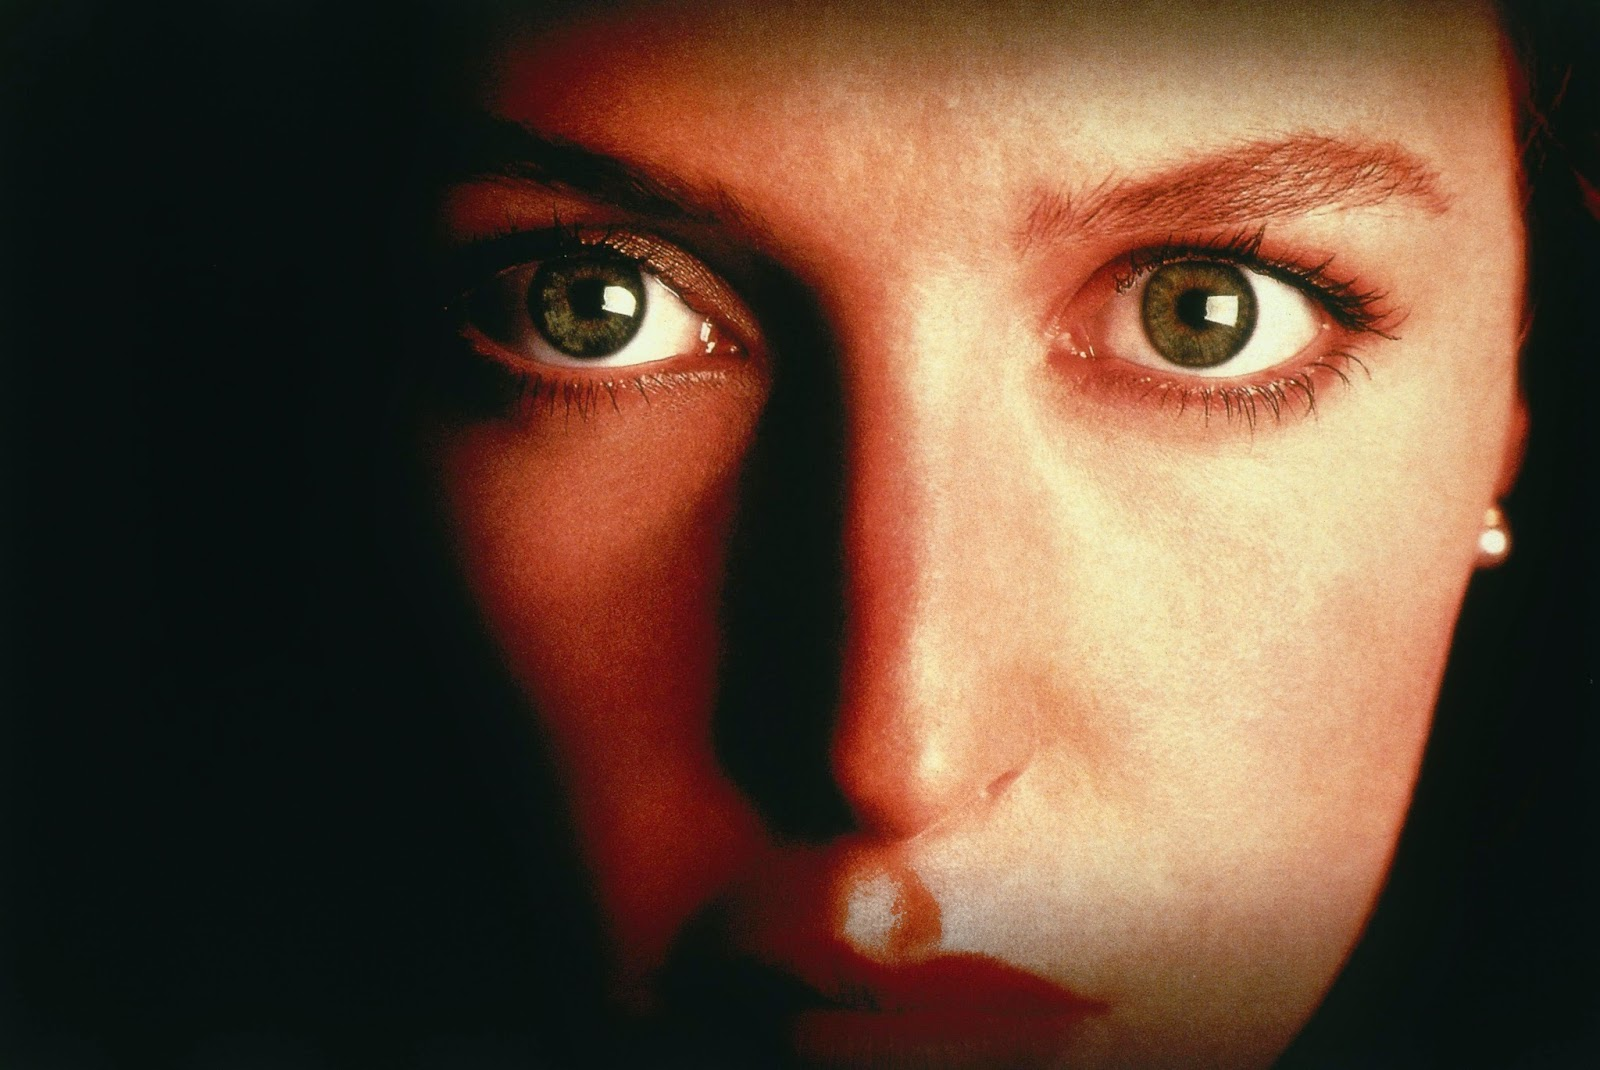 Never Again - Scully X Files Eyes , HD Wallpaper & Backgrounds